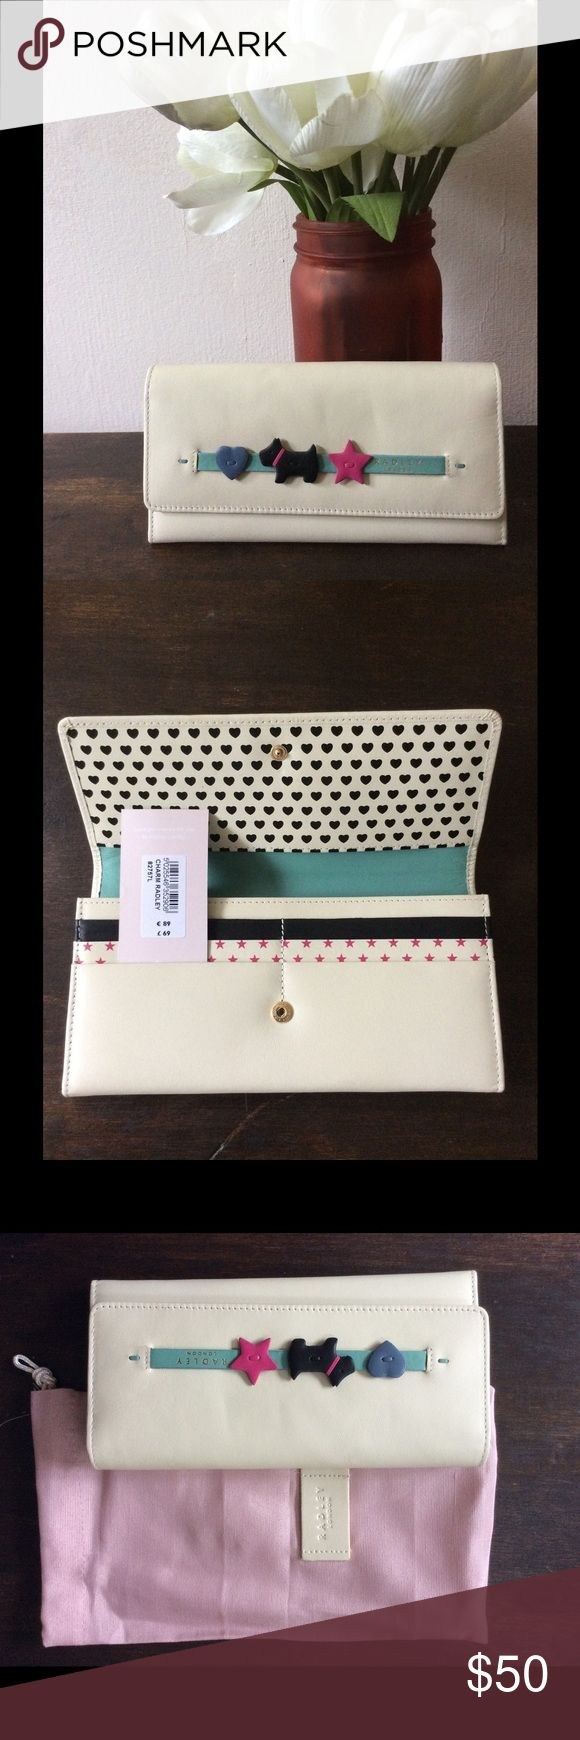 best ideas about radley radley bags ladies radley london wallet bnwt beautiful sweet leather wallet radley london is a